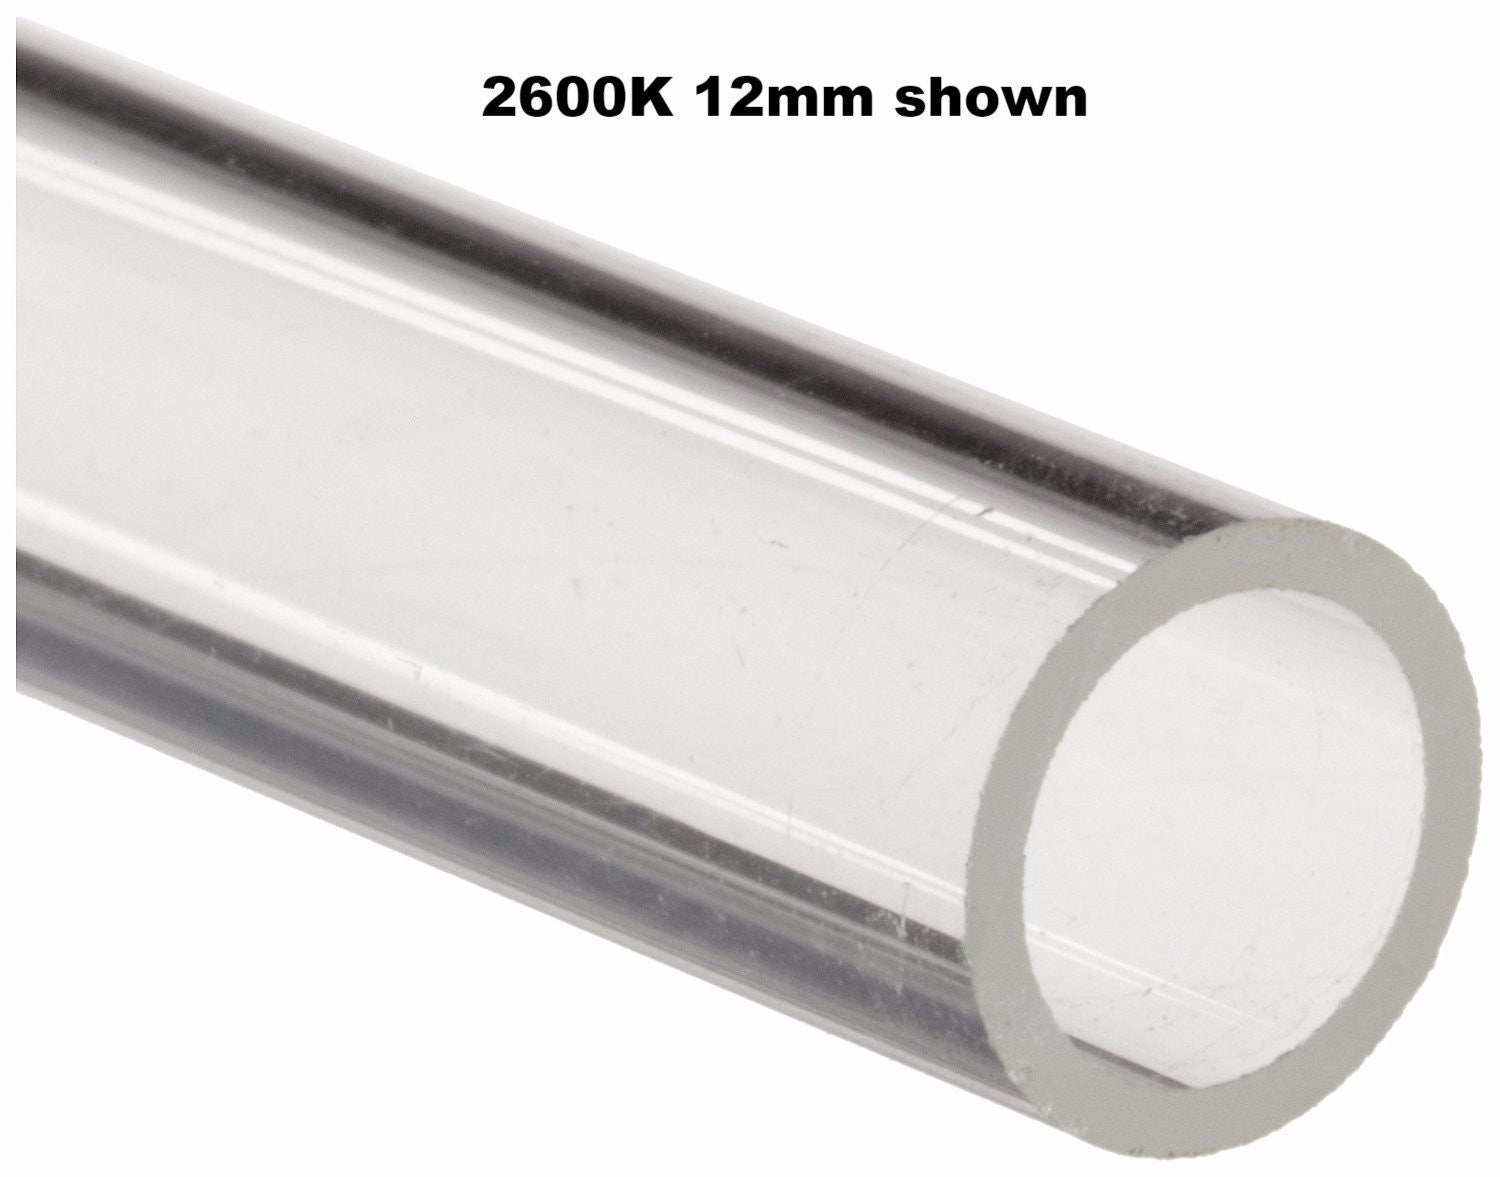 "7mm Soda Lime Glass Tubing 12""L - The Science Shop"